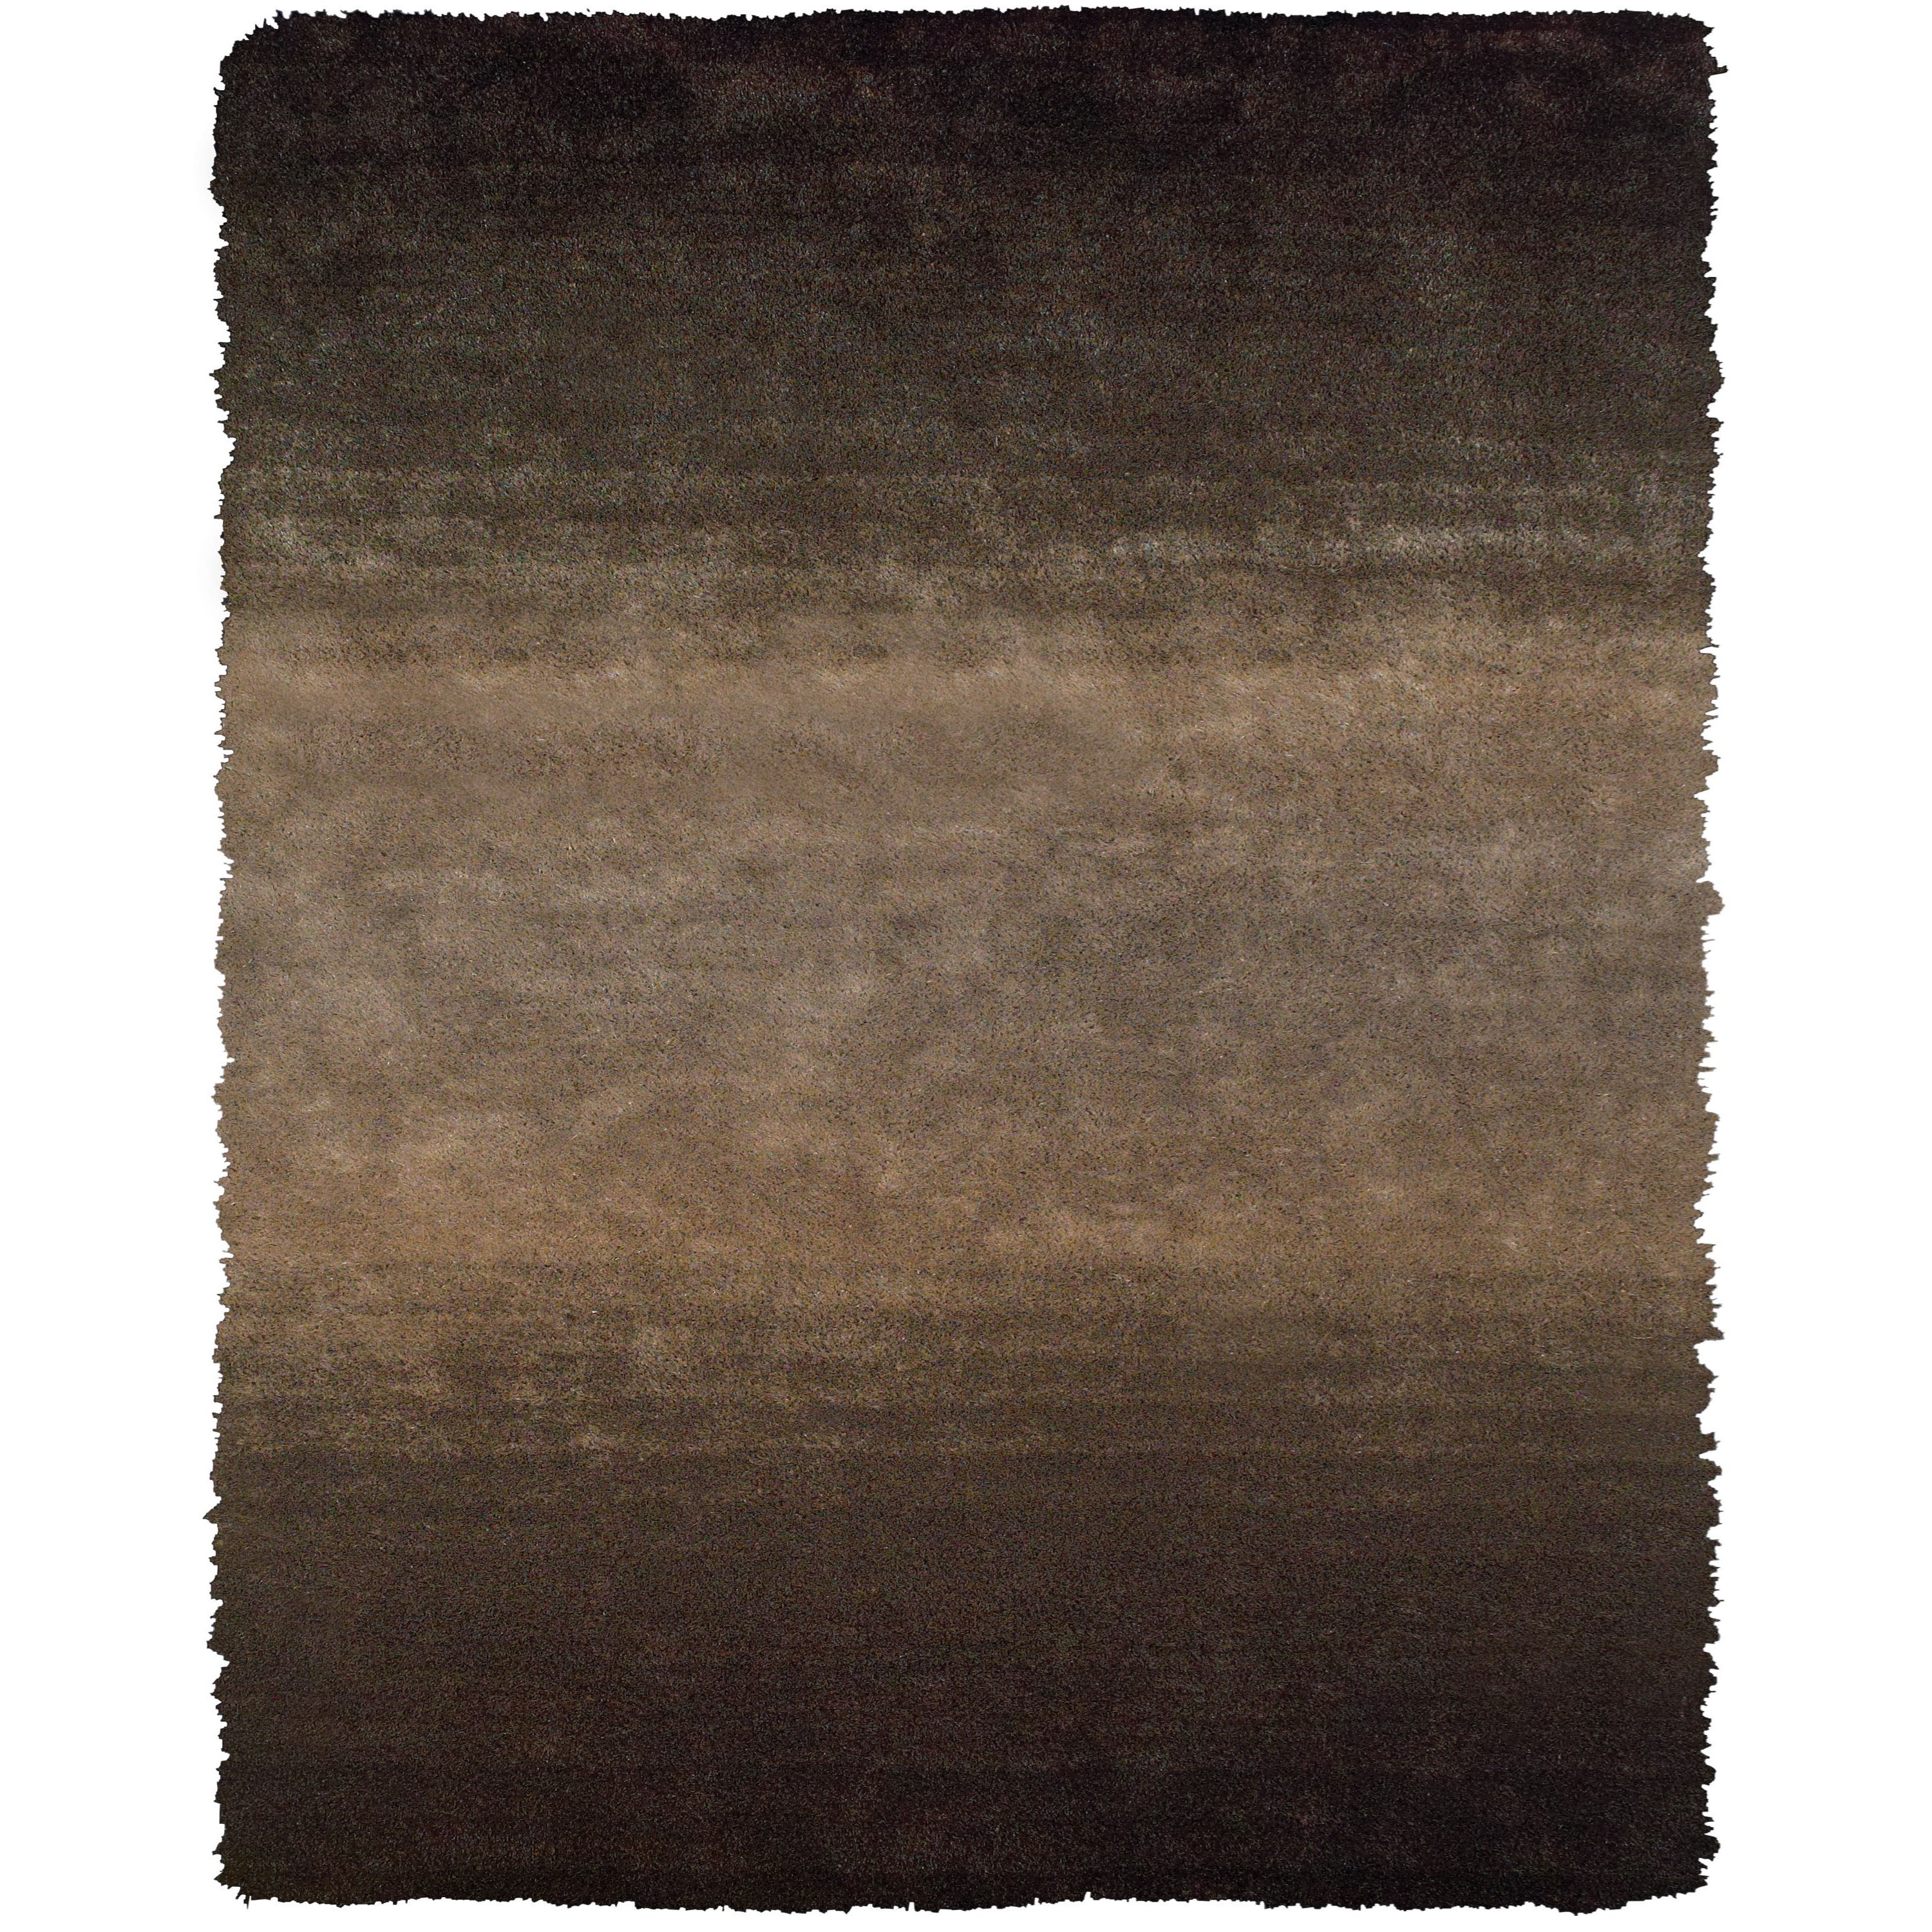 "Indochine Brown 2' X 3'-4"" Area Rug by Feizy Rugs at Sprintz Furniture"